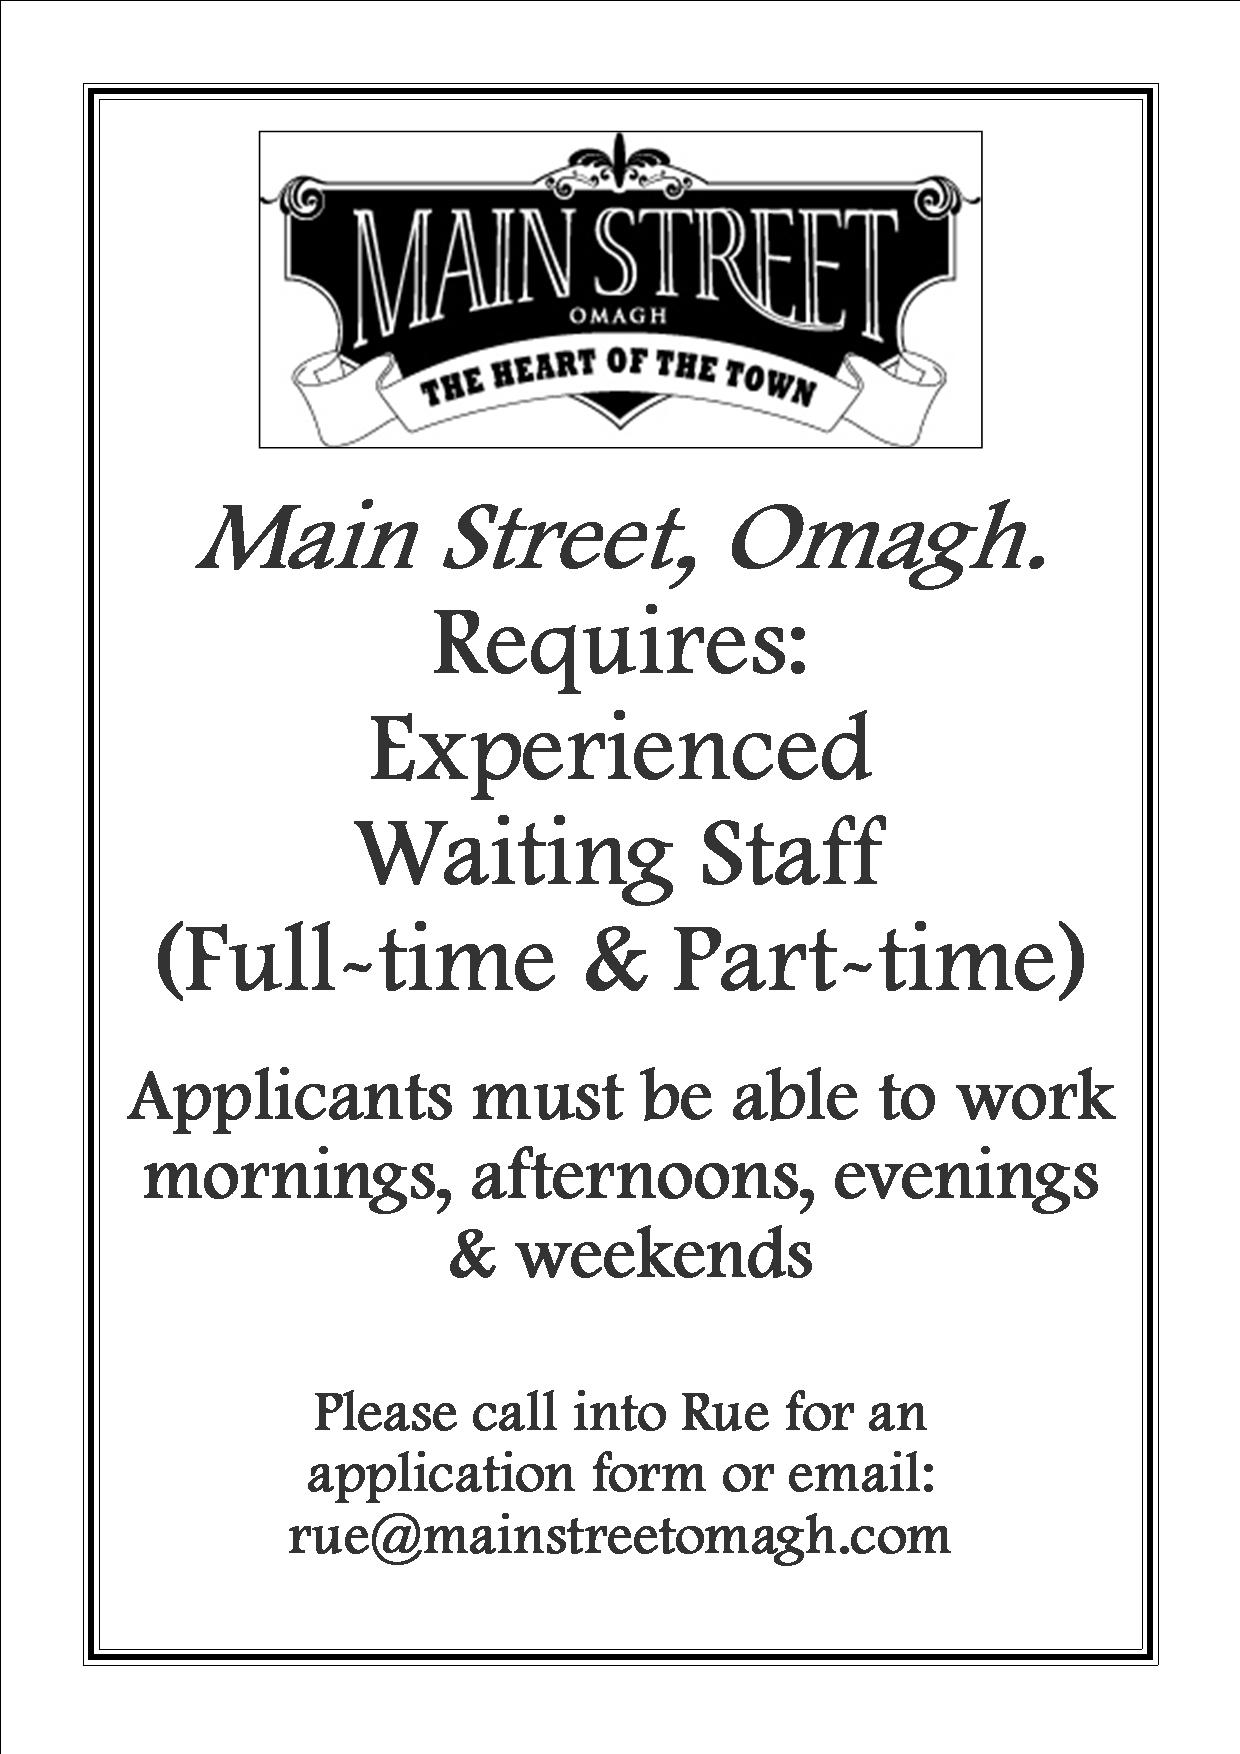 WAITING STAFF AD APRIL 16